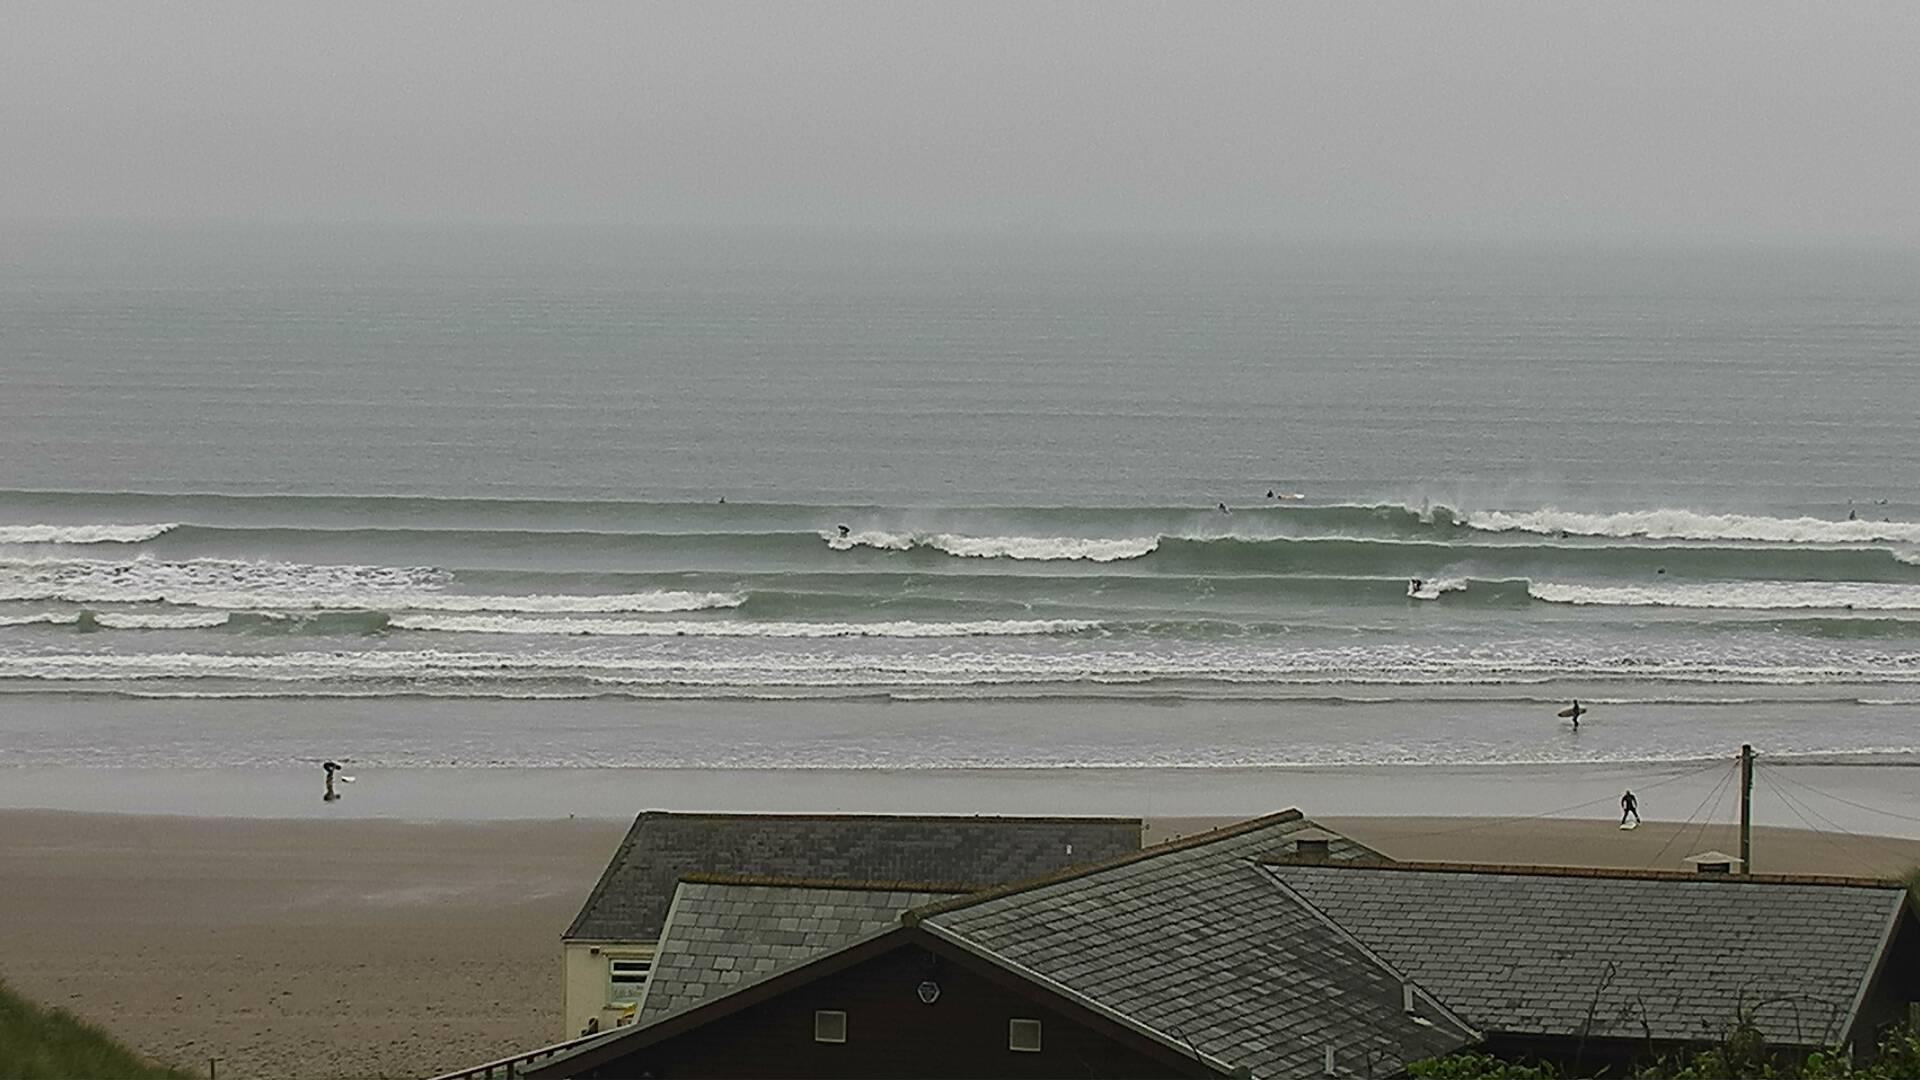 Webcam image from Saunton Sands